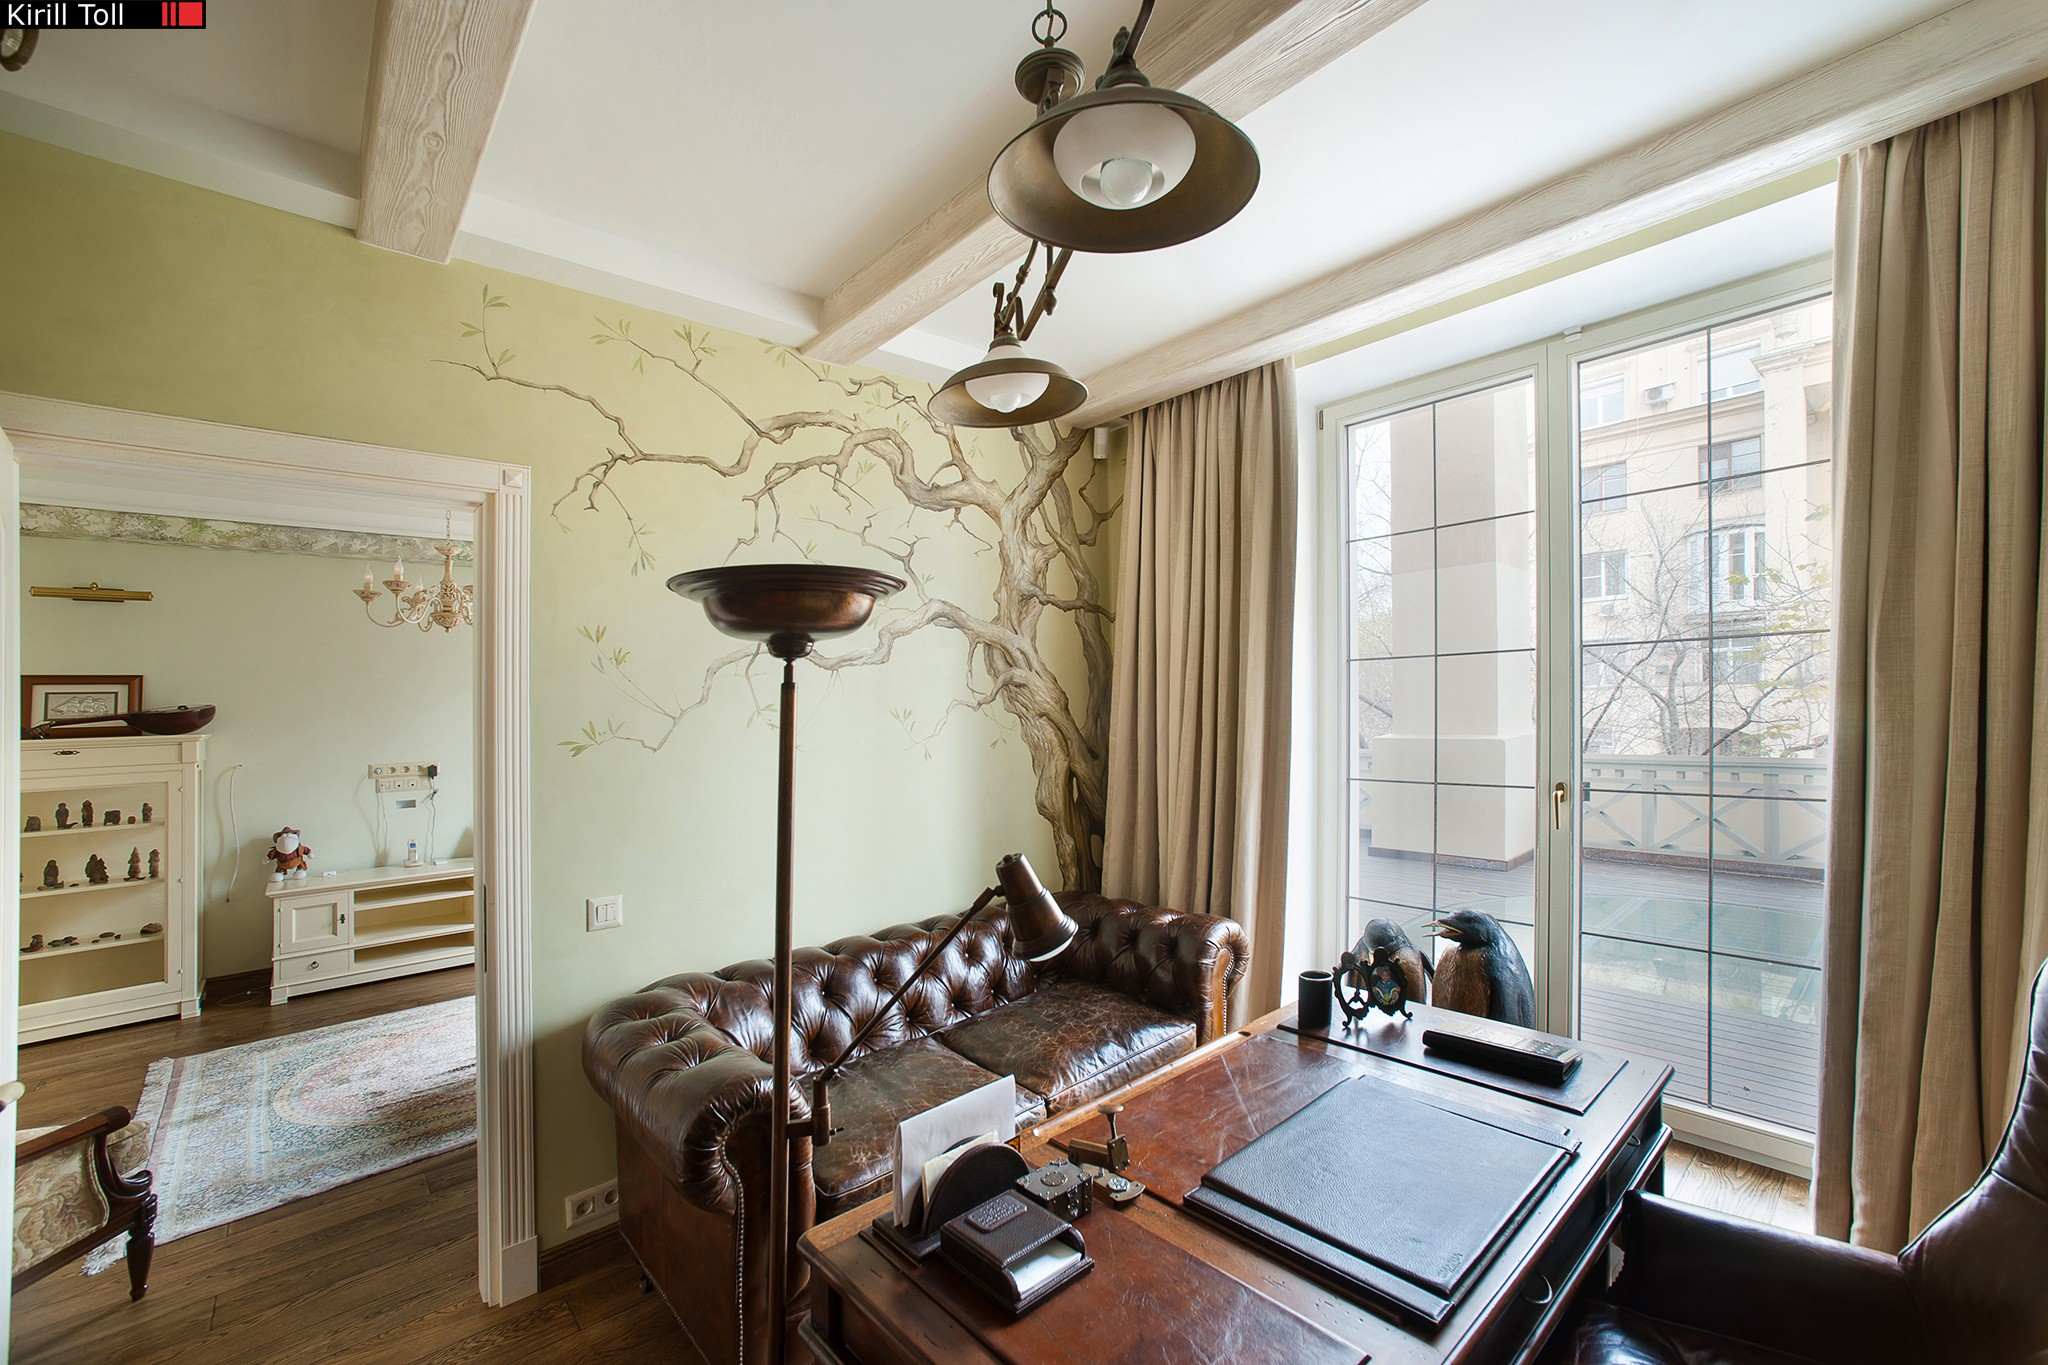 Apartments with wall paintings. Interior photography